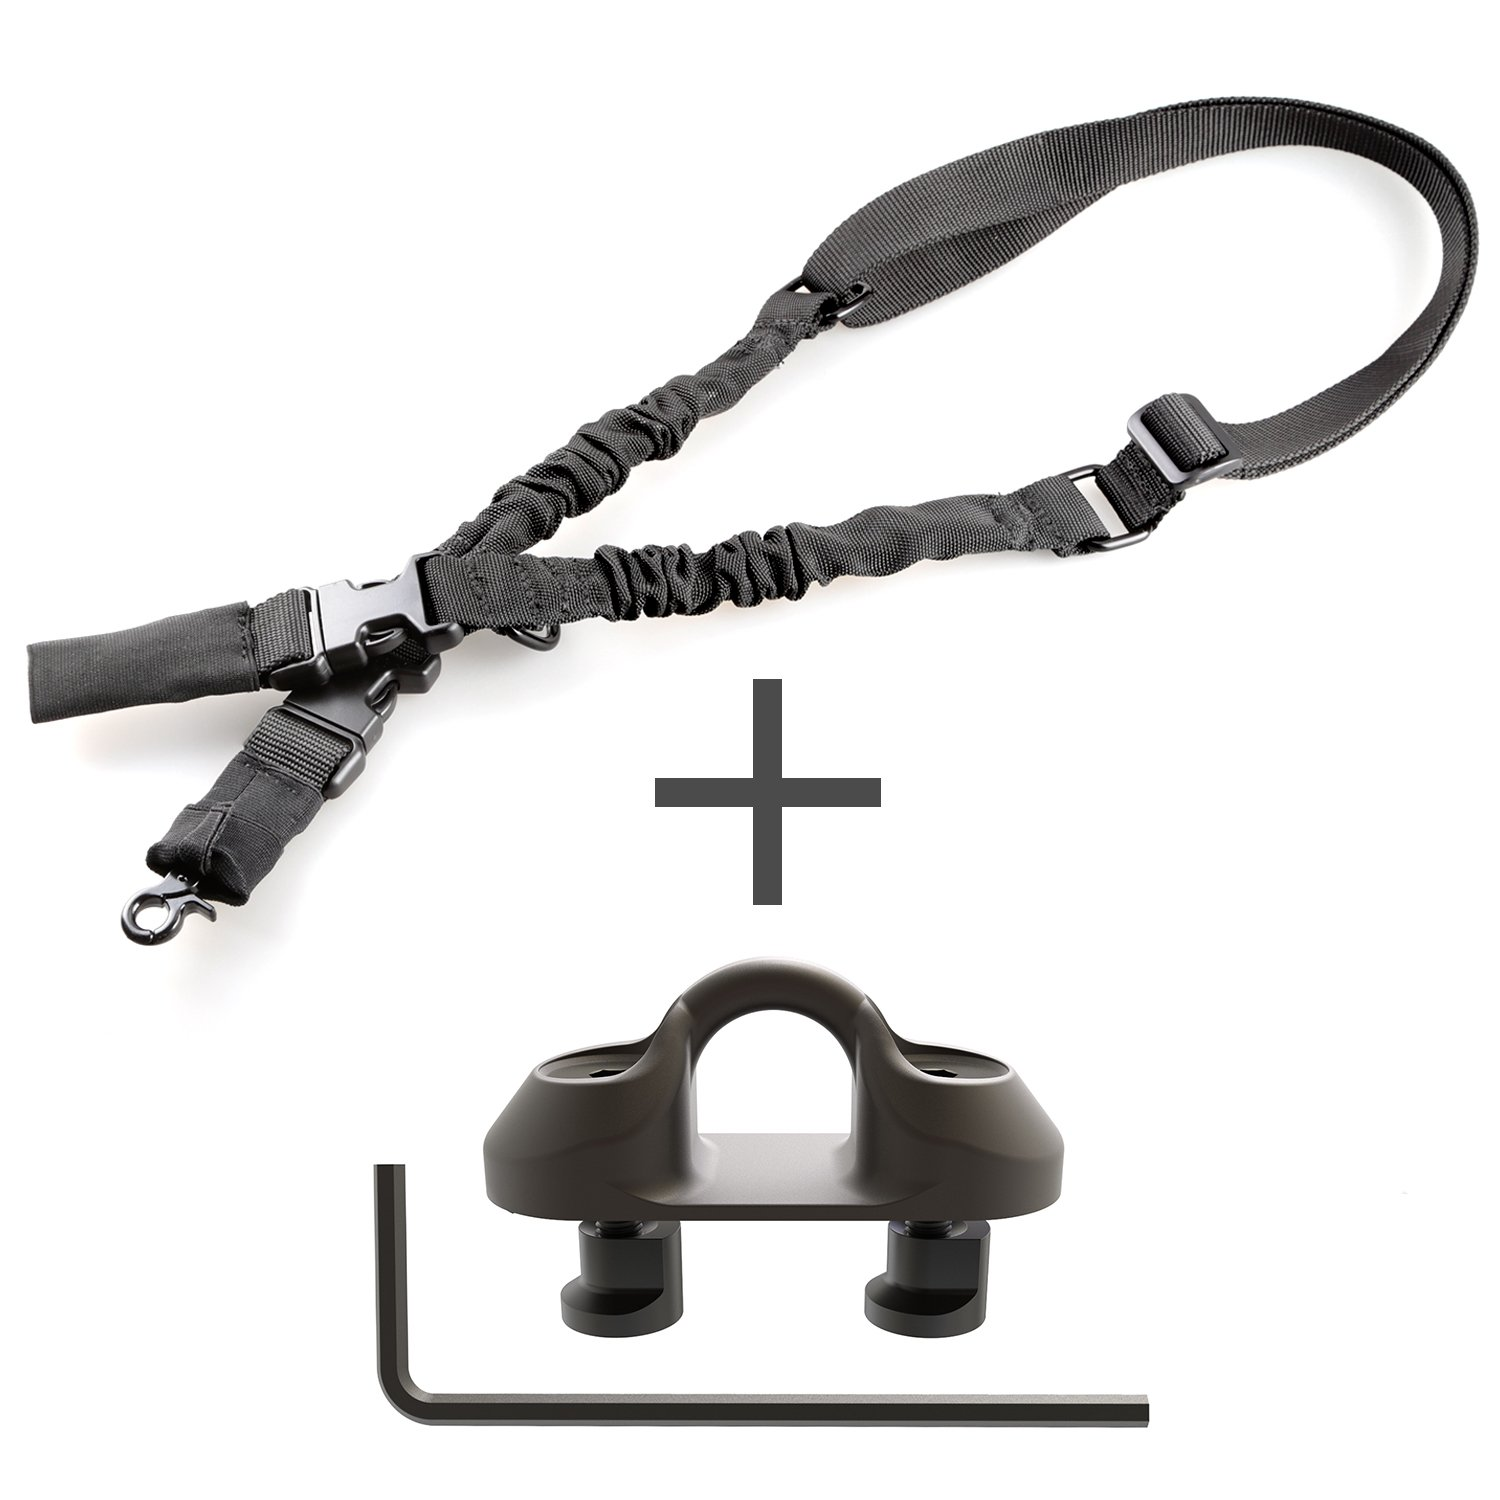 Tough Tactical Tools Keymod Sling Attachment Adapter with 2 Point Gun Sling for Hunting Shooting or other Outdoor Sports by Tough Tactical Tools (Image #1)